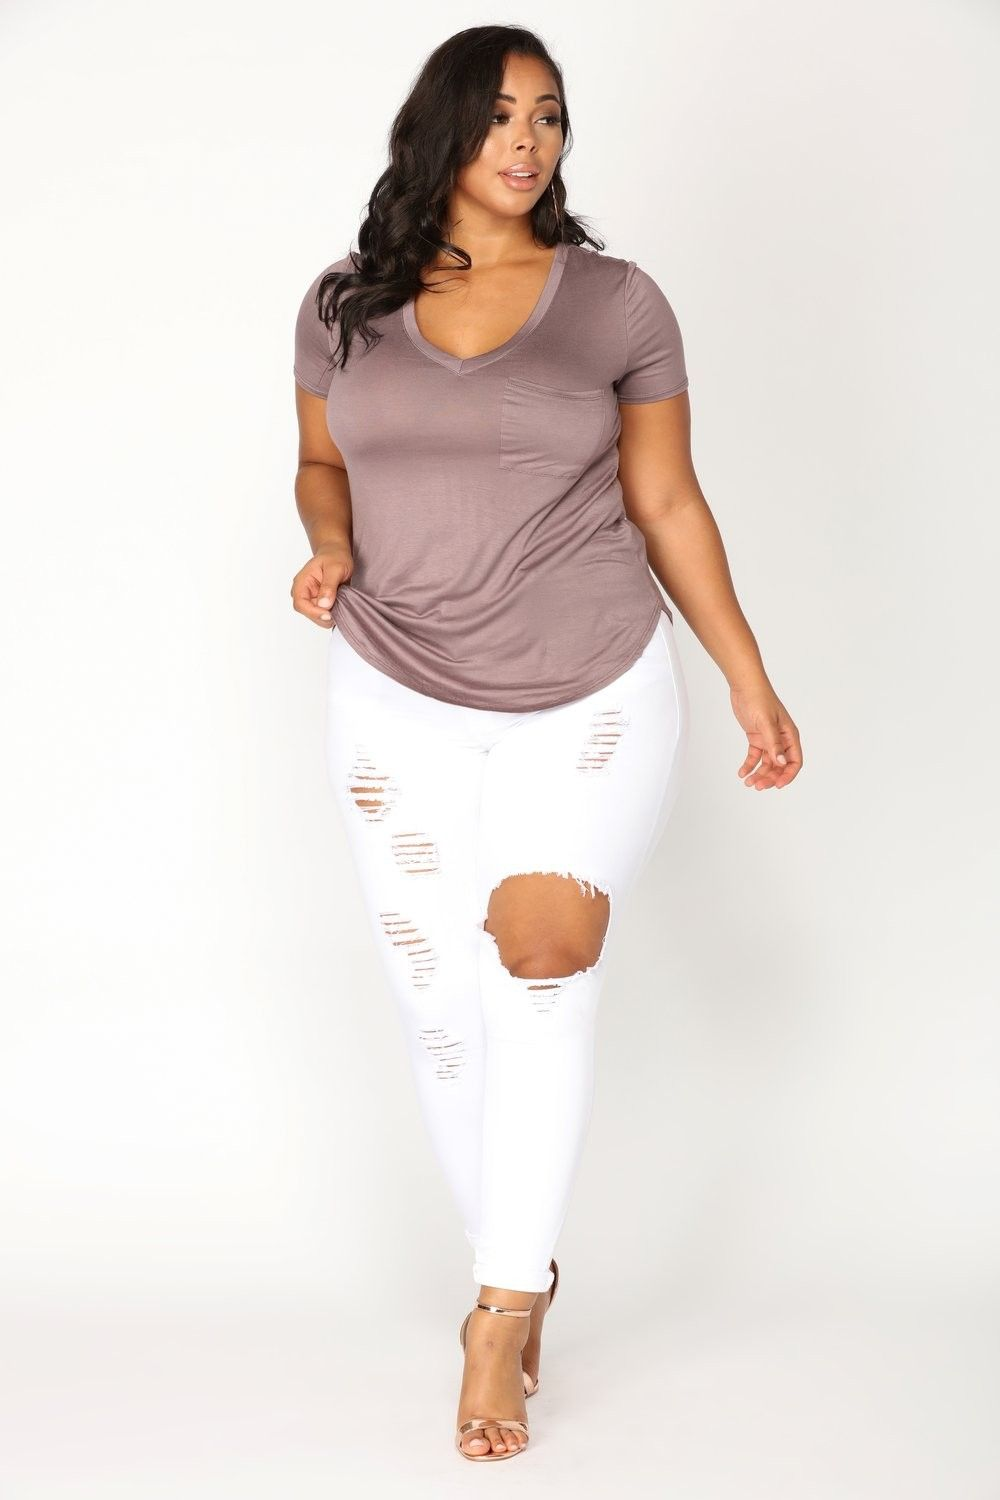 55f3ac521f0 Plus Size Glistening Jeans - White  34.99  ootd  style  fashion  chic